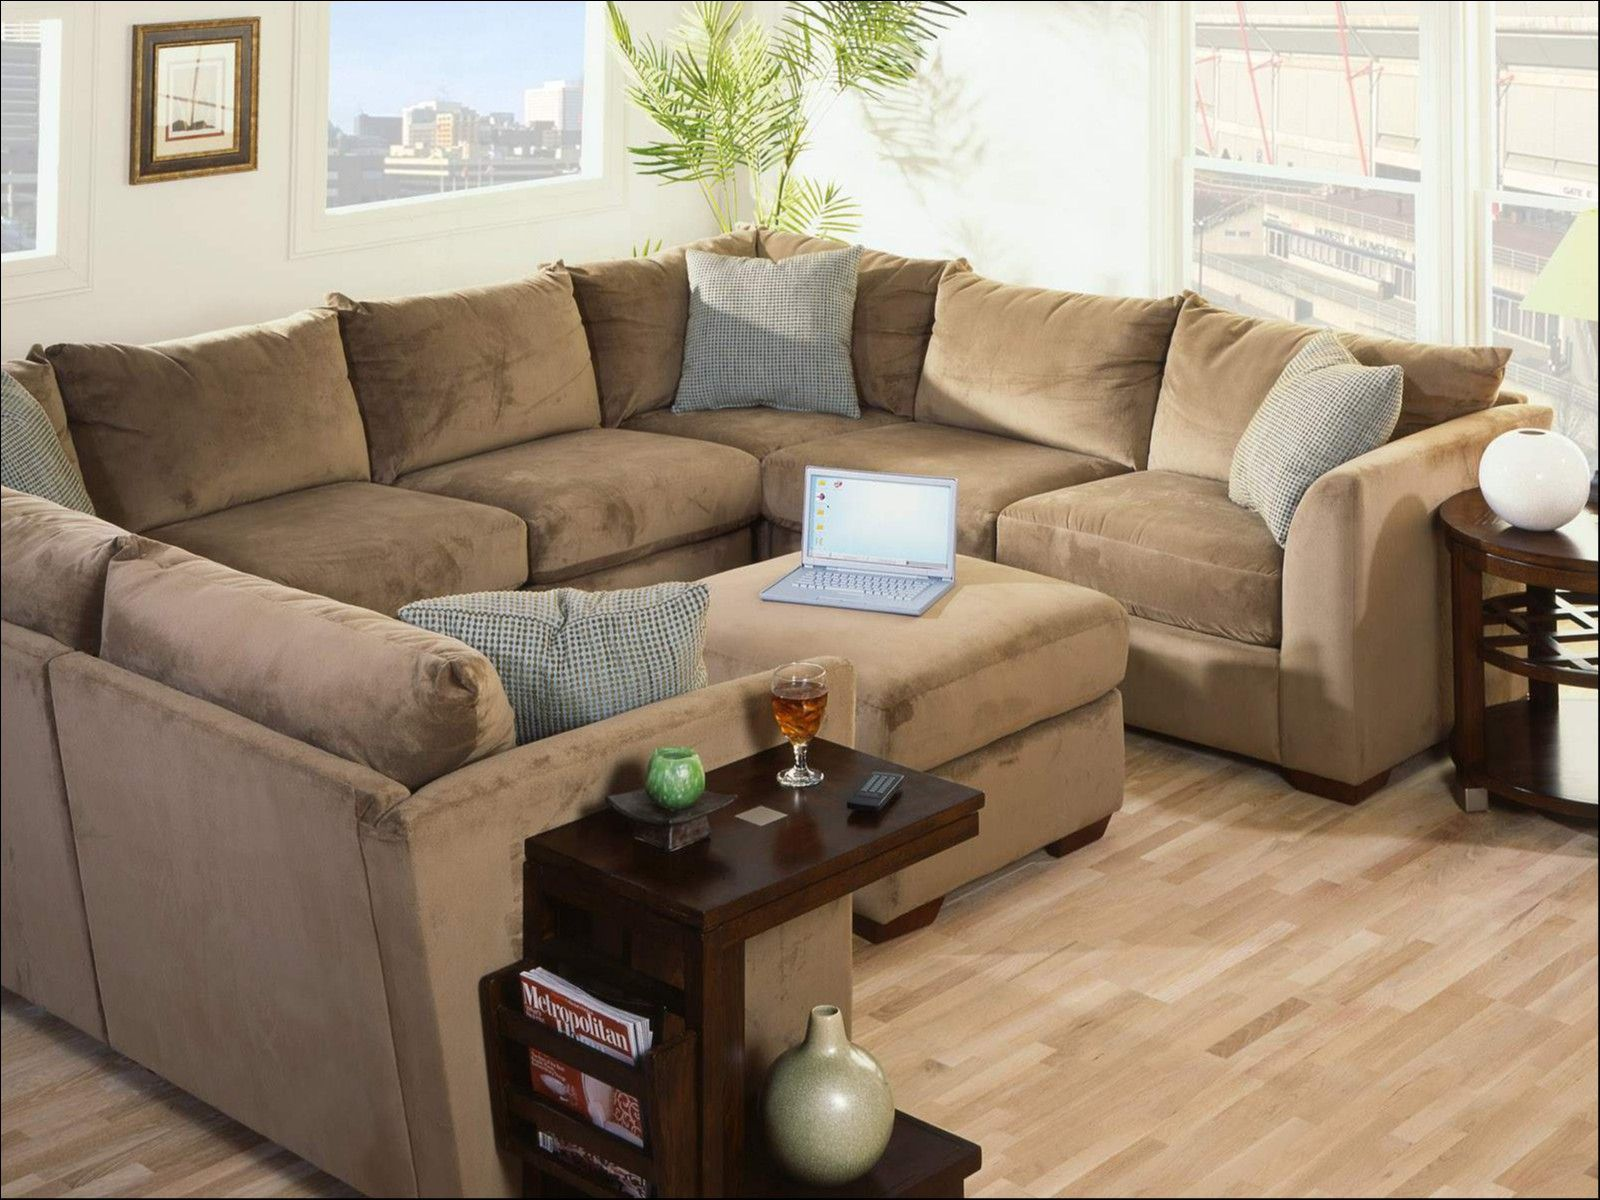 Best 12 Living Room Couch Ideas (With images) Couches